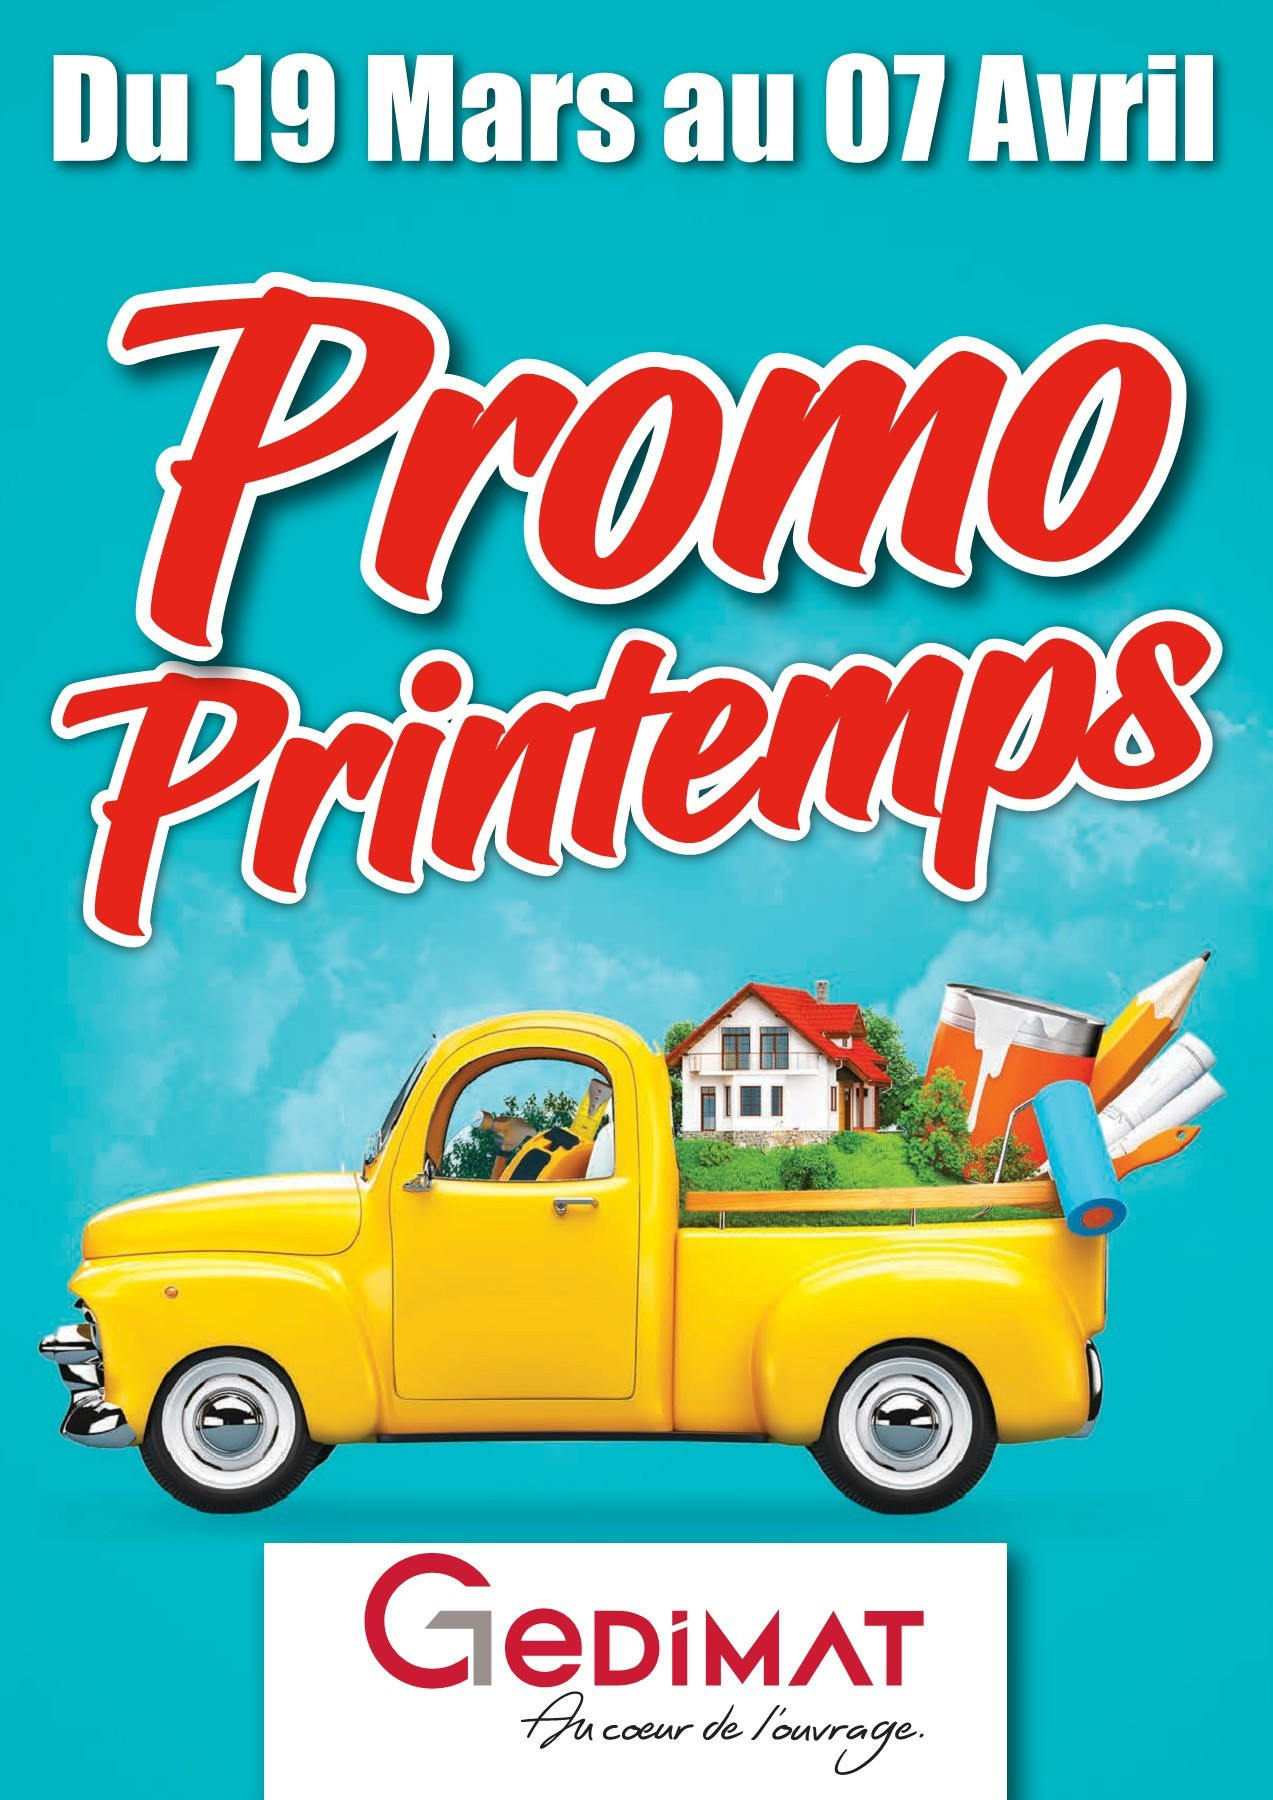 Abris Bois Gedimat Gedimat Derrey Promo Printemps 2018 Pages 1 20 Text